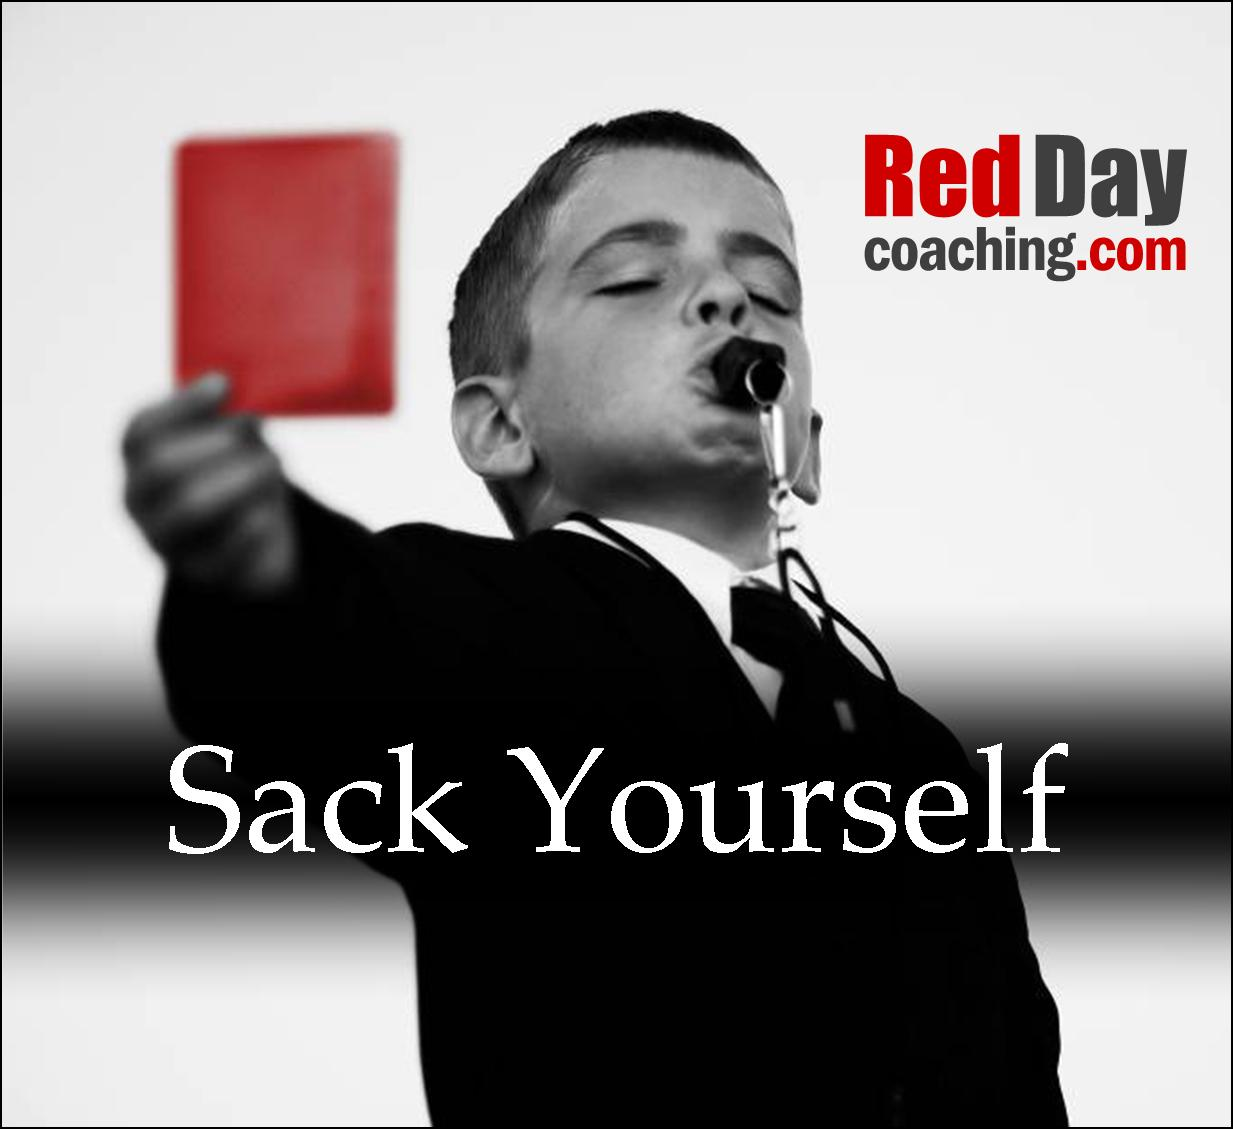 Sack Yourself